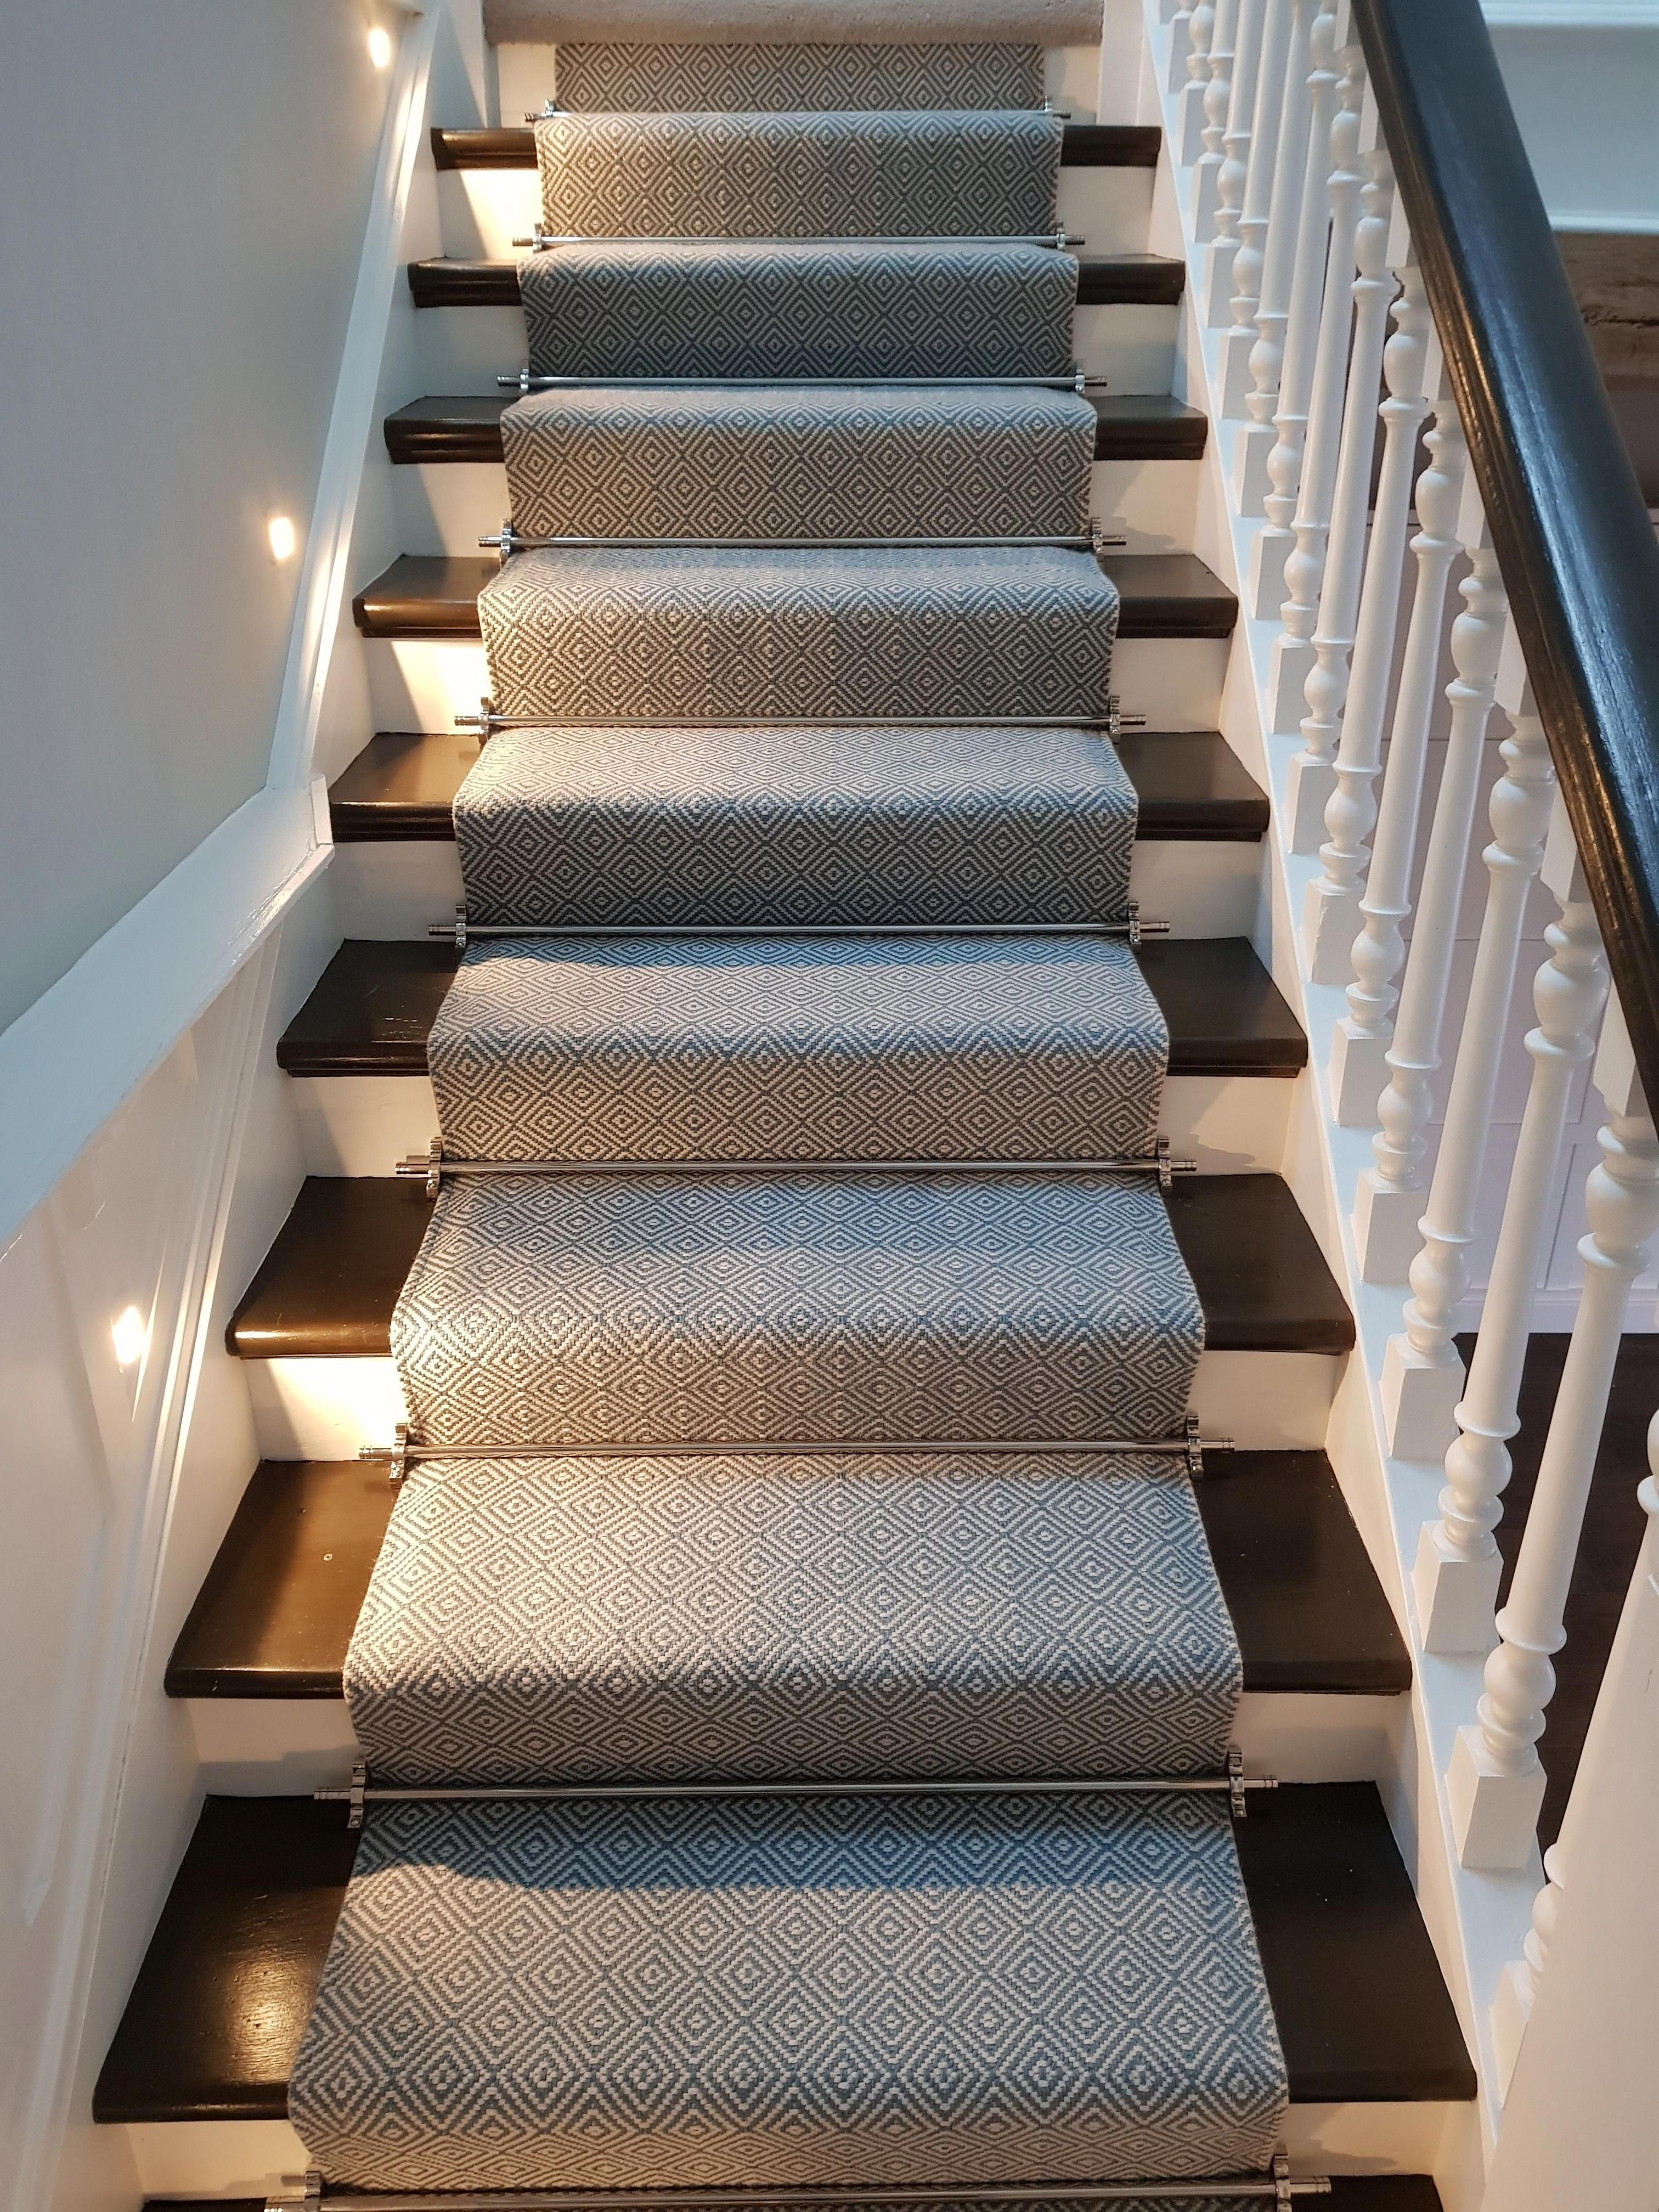 Carpet Runners Uk Contact Number Kitchencarpetrunnersuk Post 7045749871 Stair Runner Carpet Carpet Staircase Staircase Design